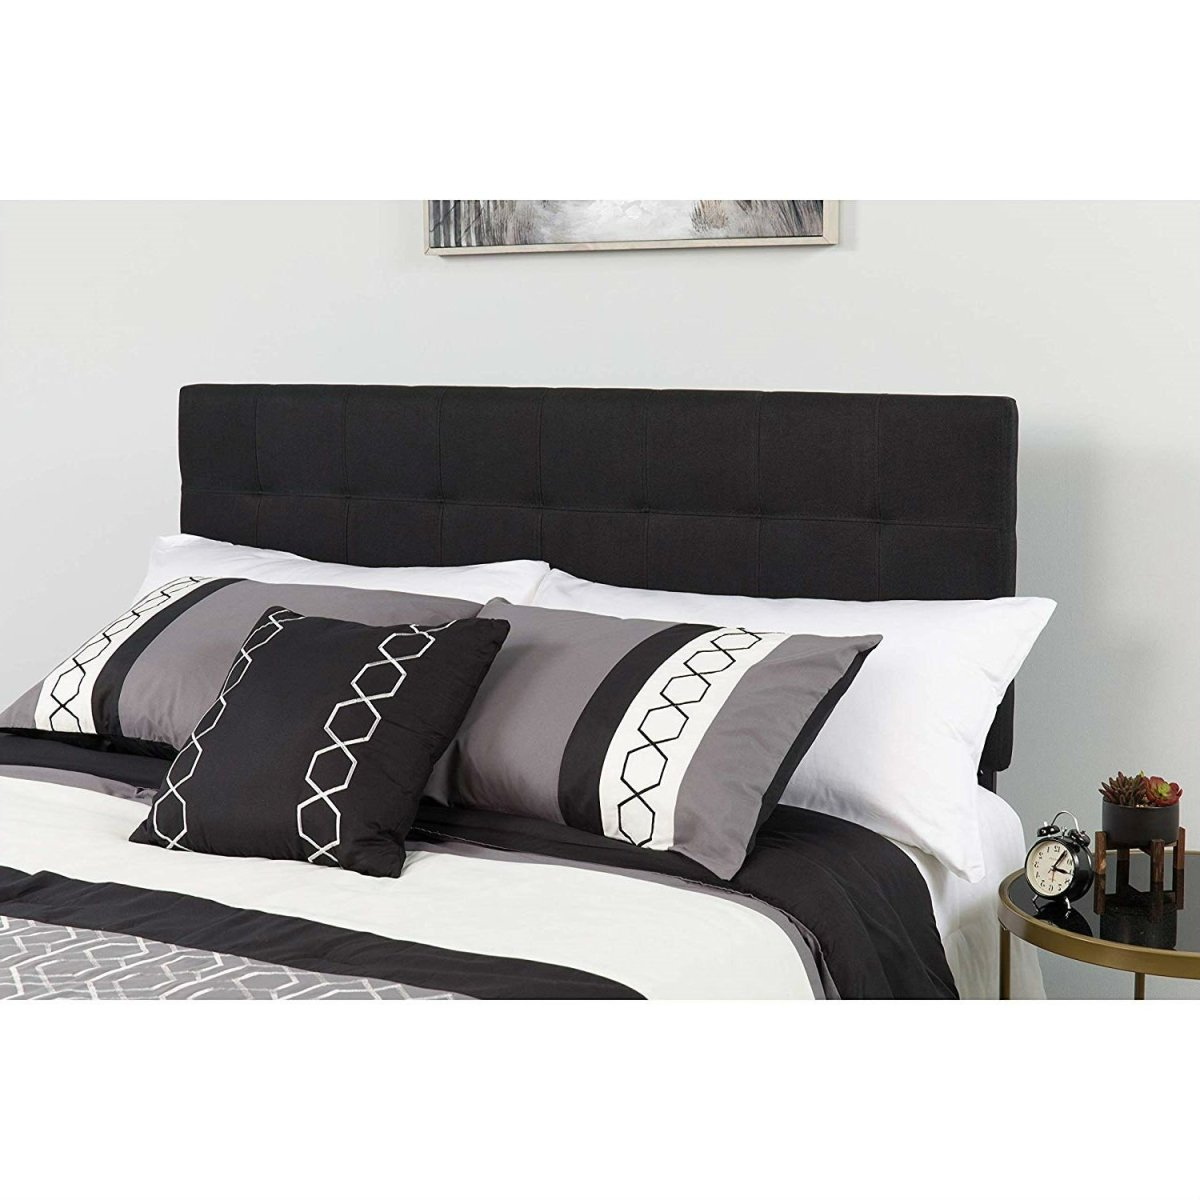 Queen size Modern Black Fabric Upholstered Panel Headboard.